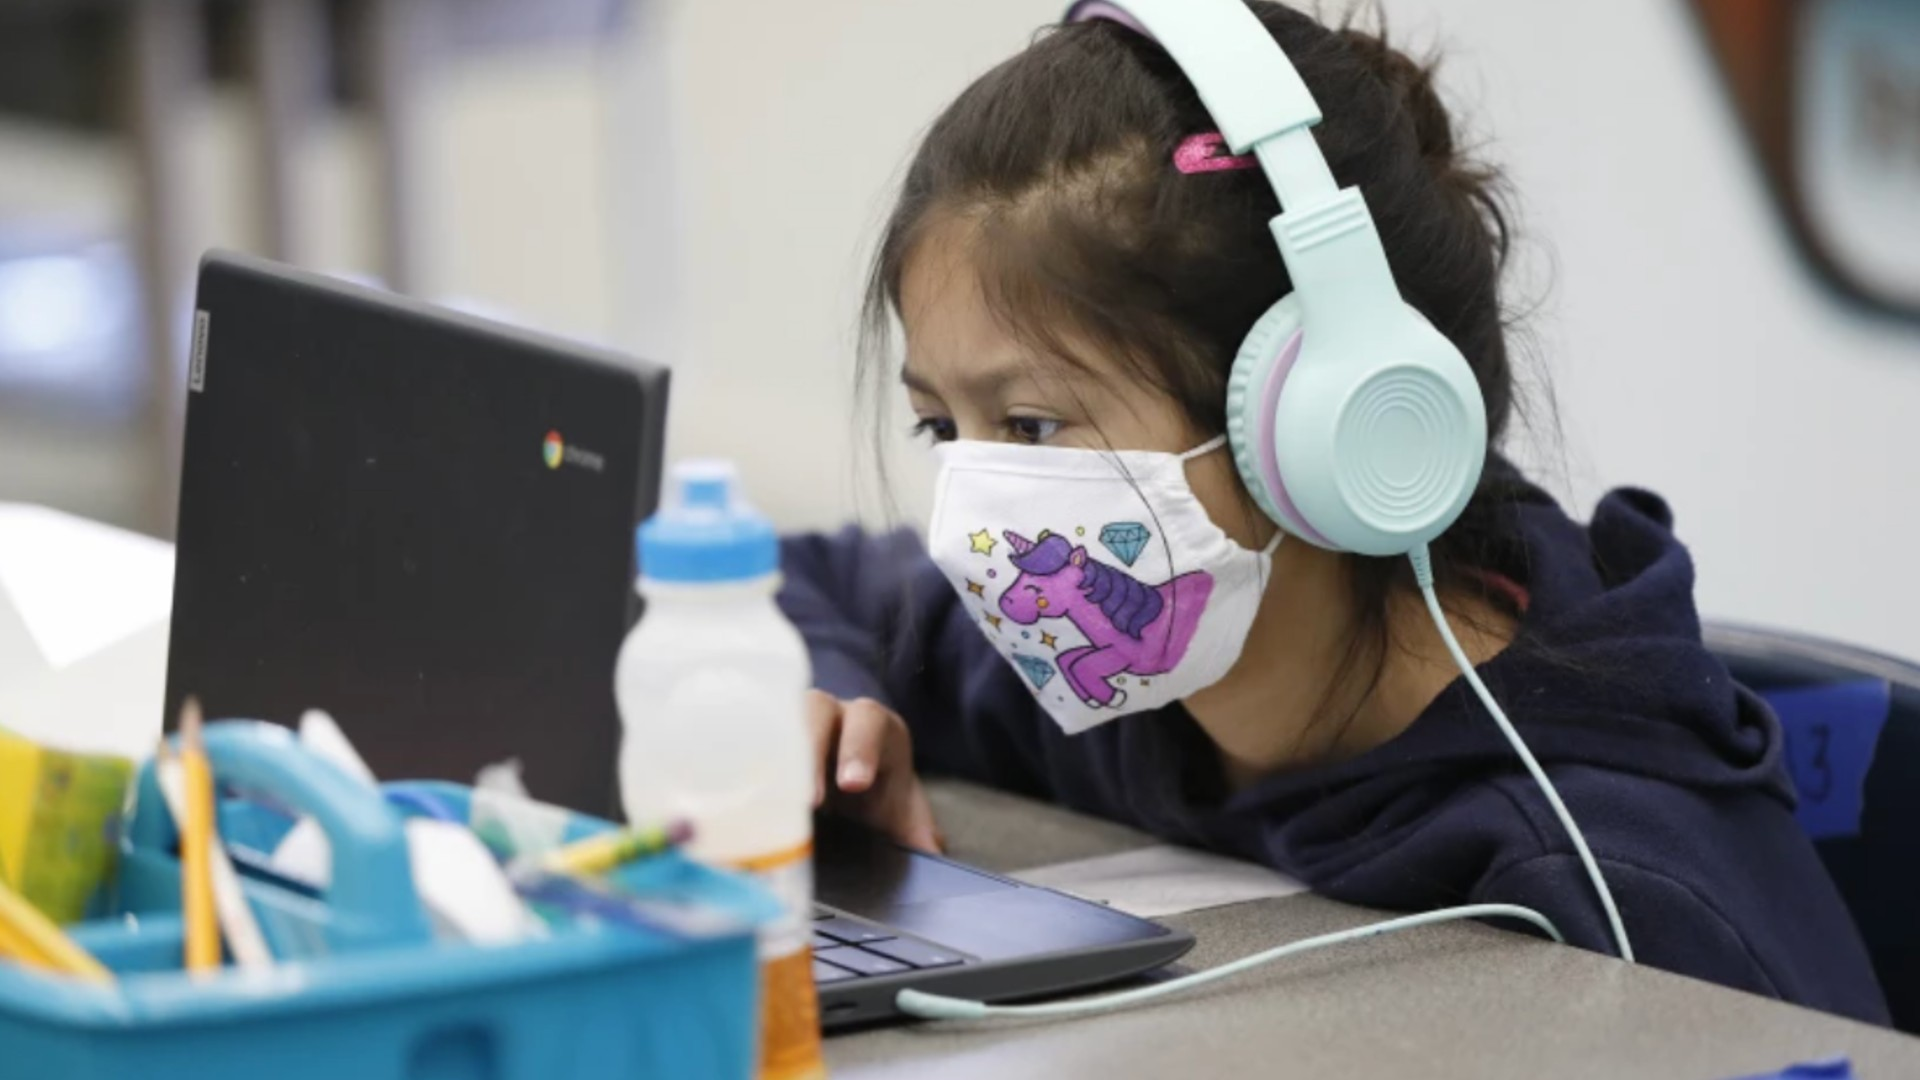 California students won't be allowed on campus in the fall if they refuse to wear masks, under state guidelines released in July,(Al Seib / Los Angeles Times)